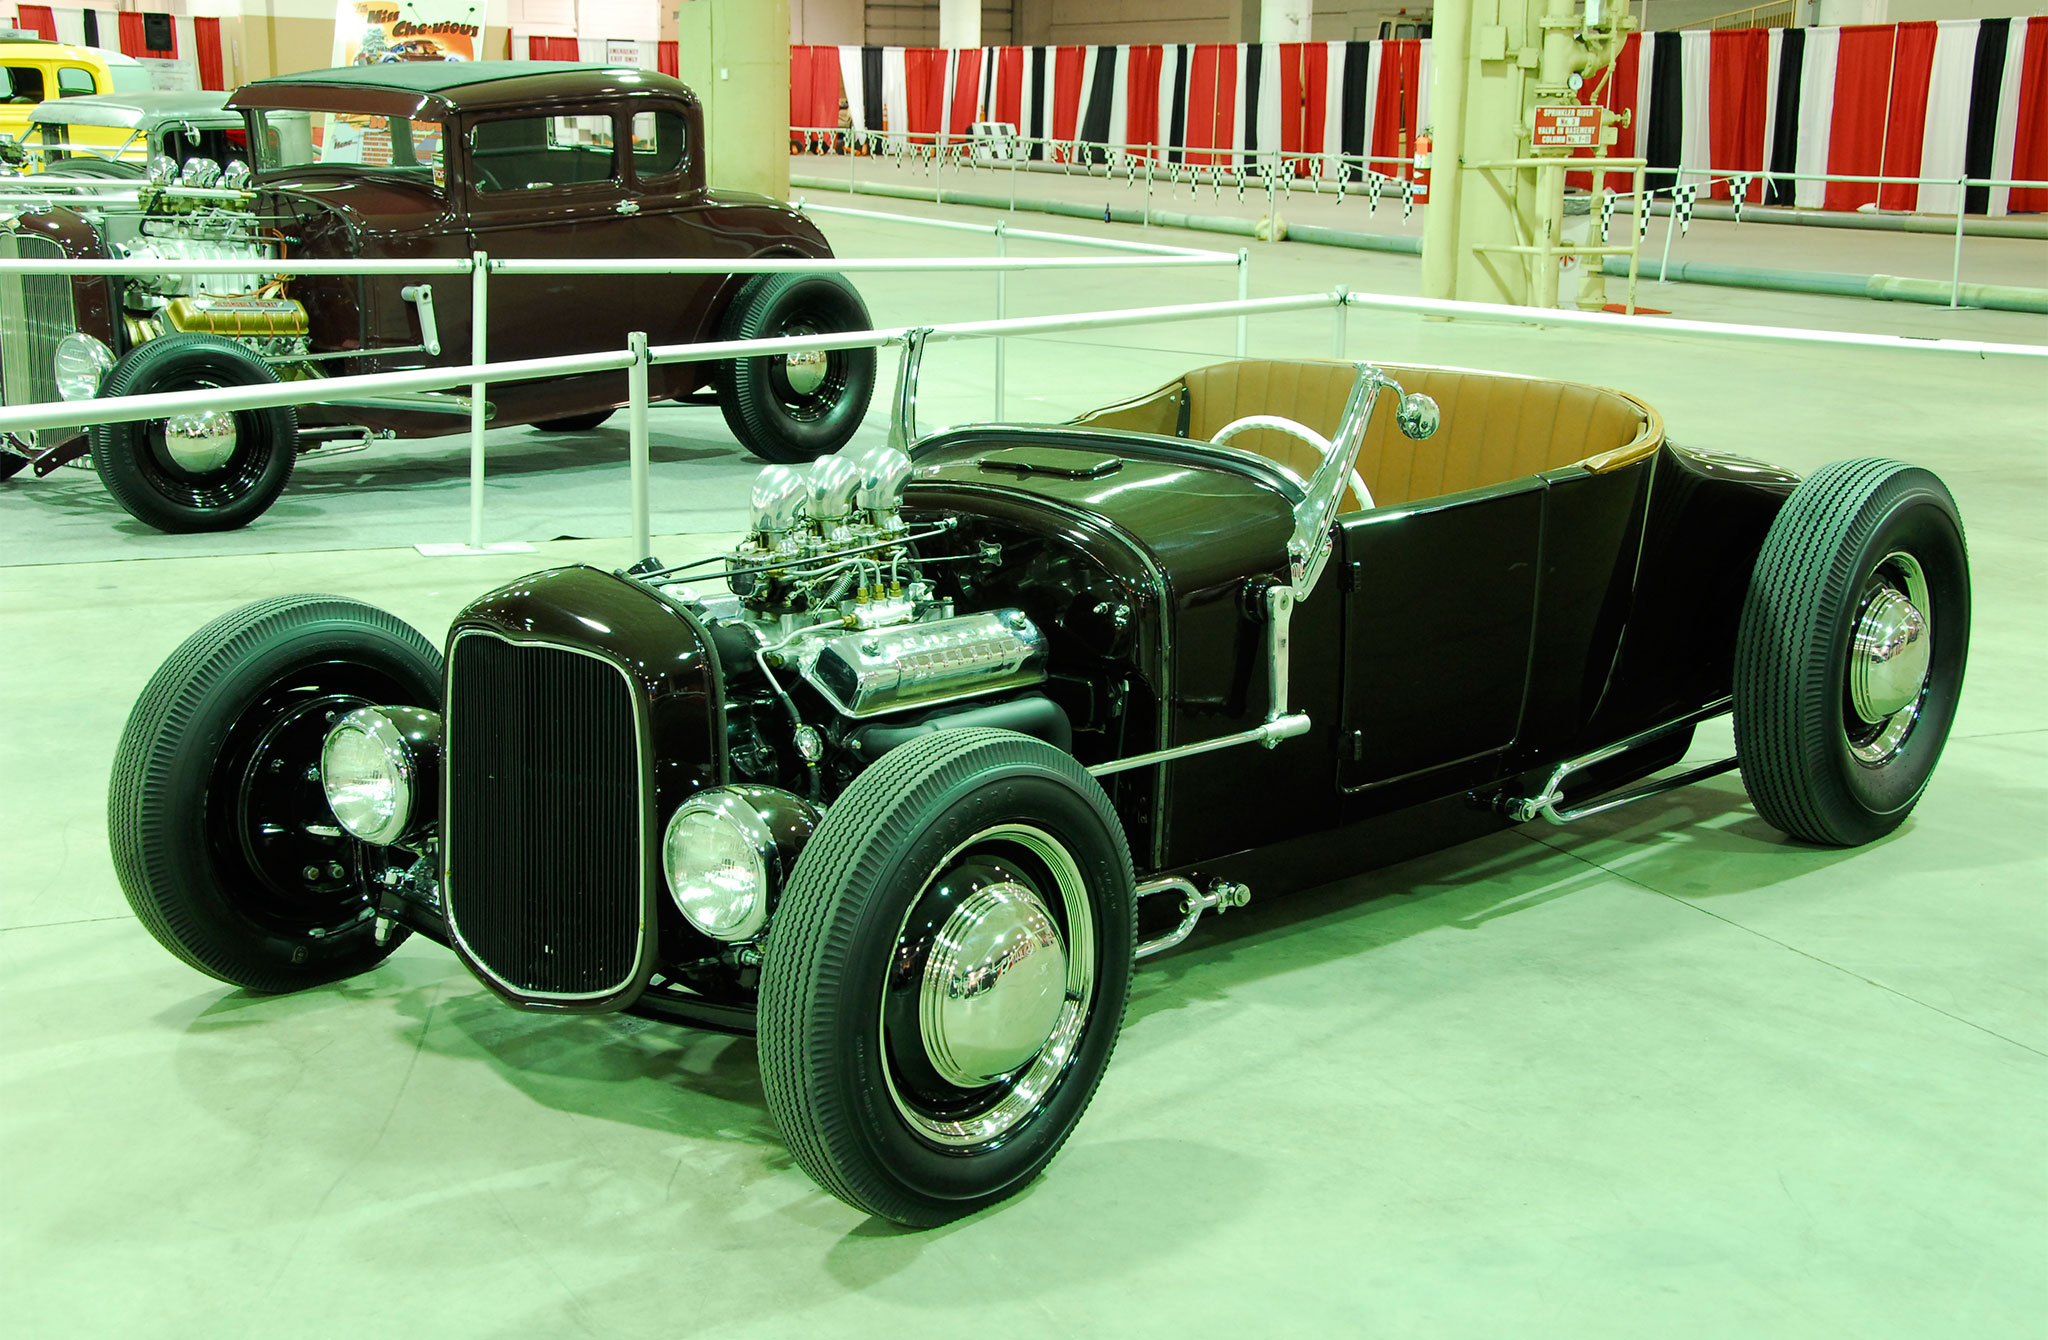 One of the most well-balanced 1926 Ford roadsters on the scene today belongs to Jon Schuchart and features a deep maroon body sitting on an owner-fabbed chassis packed with a 1955 Mercury 292ci V-8 topped with an Offy three-pot.